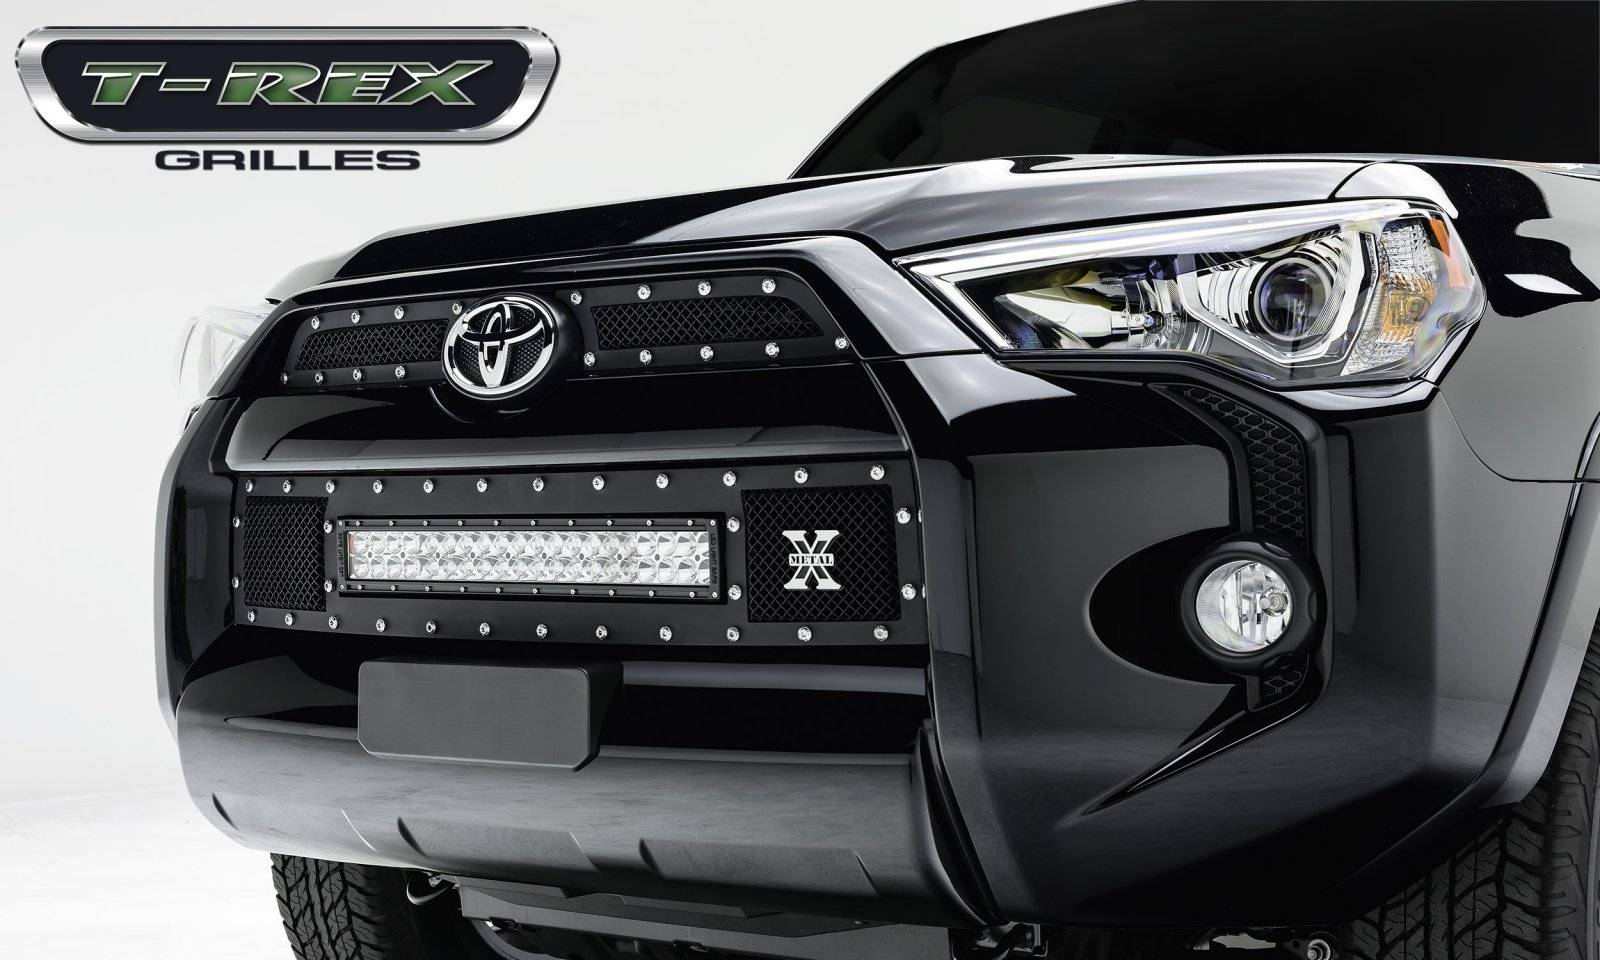 Toyota 4 runner torch series led light grille 1 20 light bar toyota 4 runner torch series led light grille 1 20 light bar formed mesh grille main bumper kit 3 pcs black powdercoated mild steel pt 6319491 mozeypictures Image collections